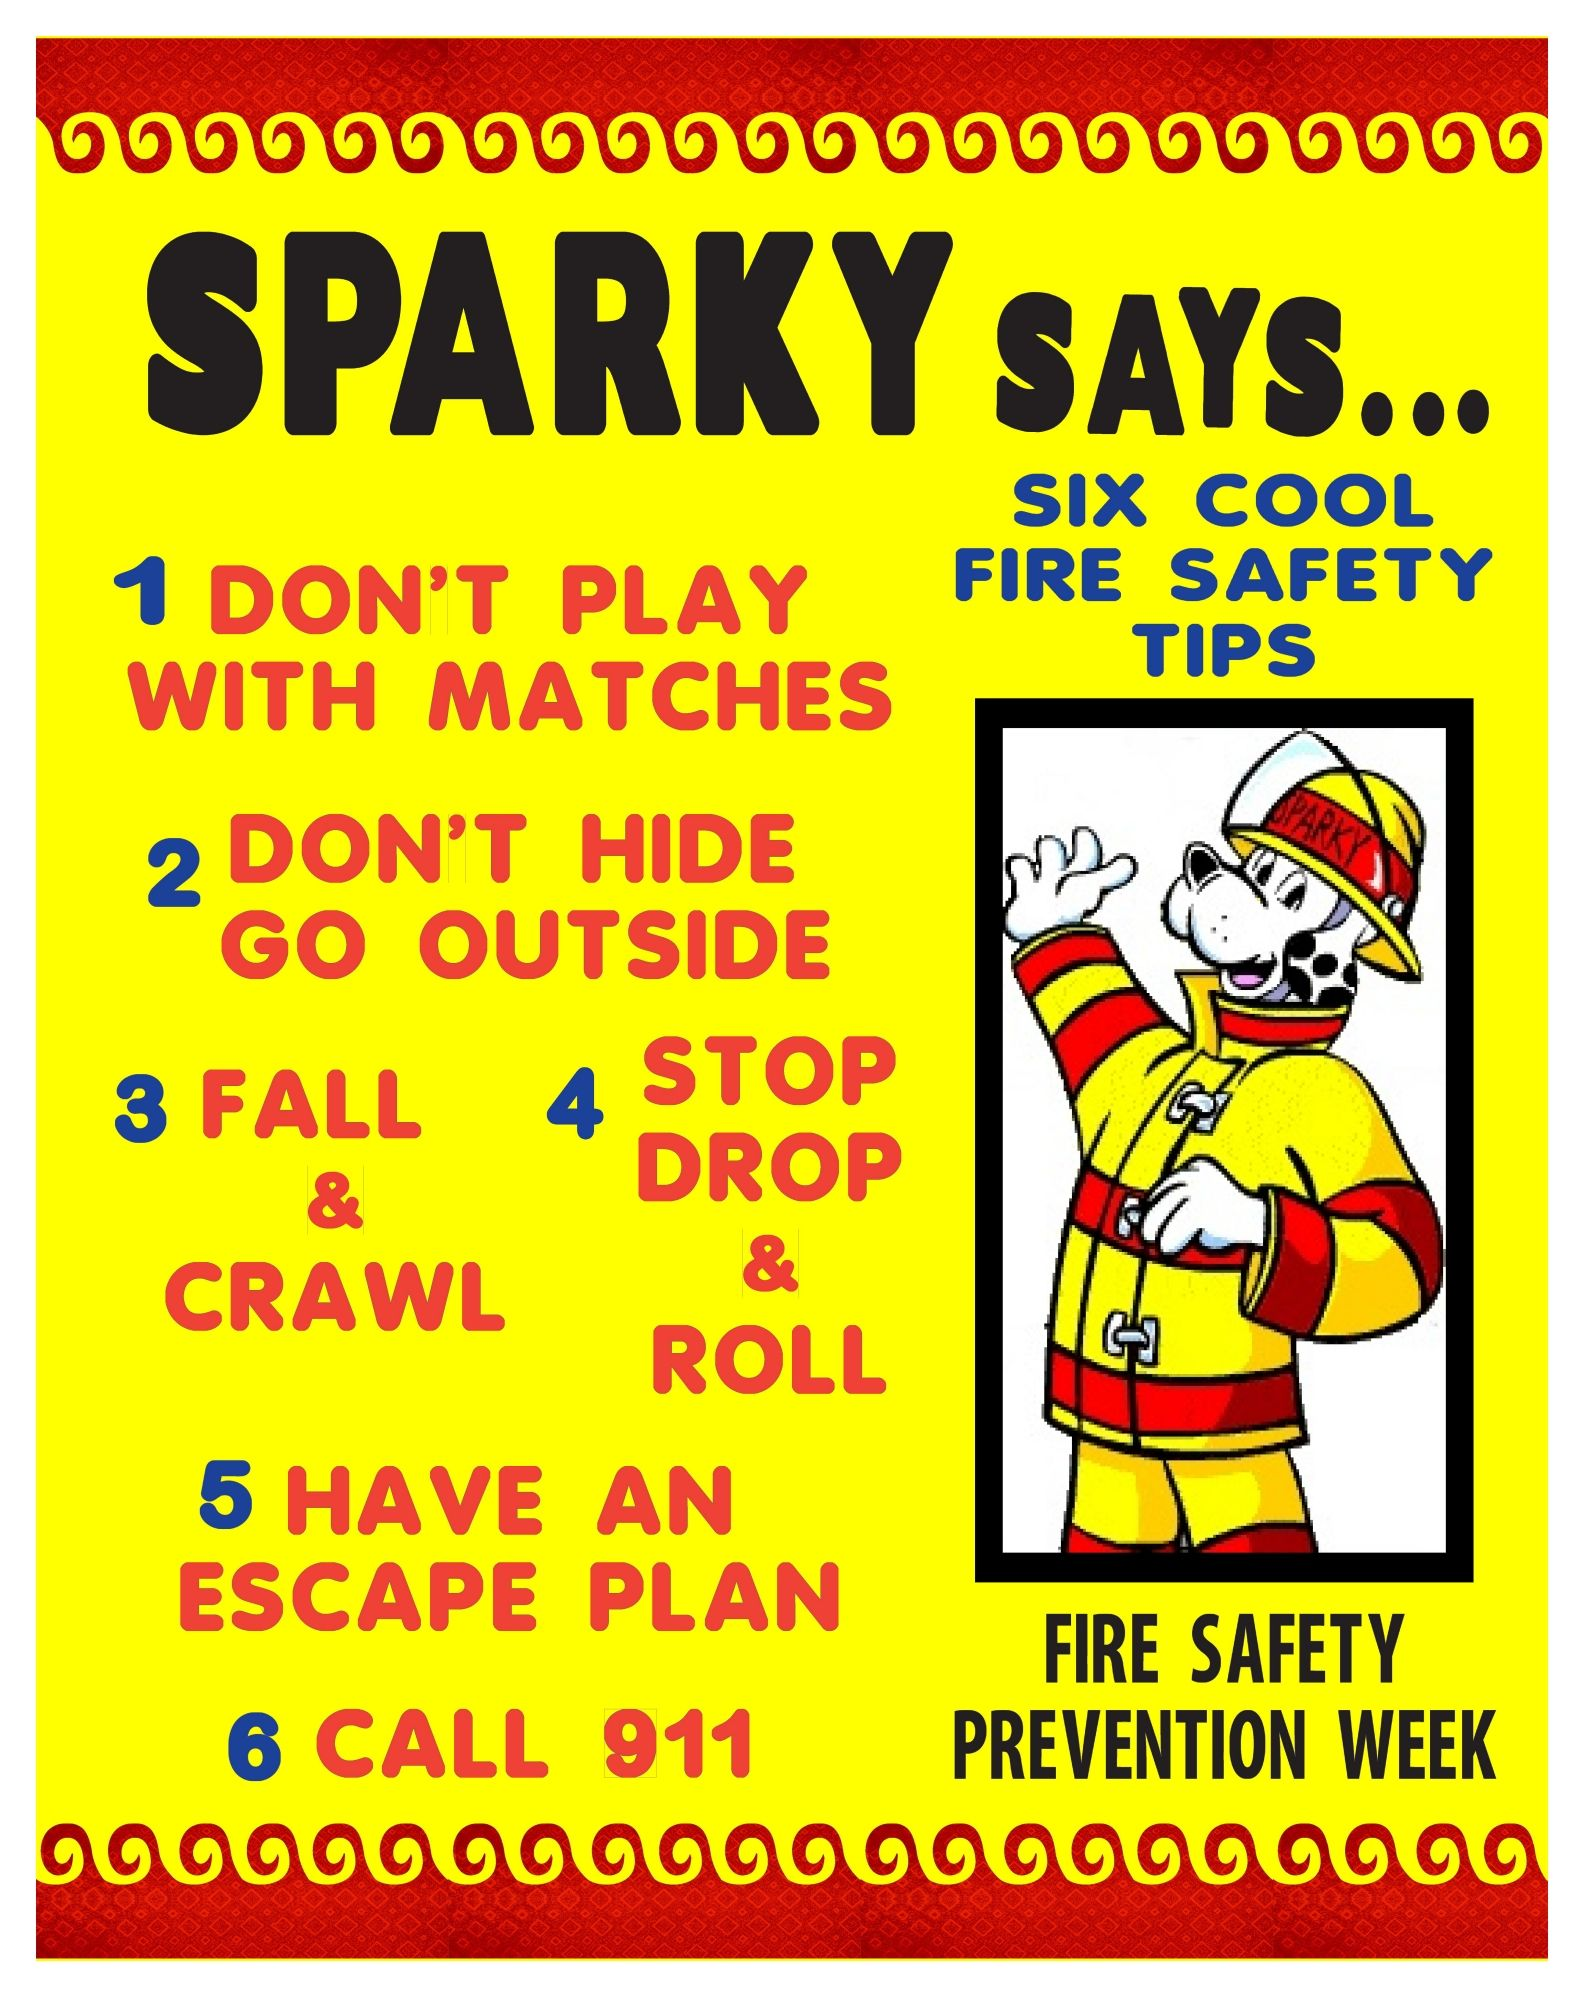 Fire Safety Tips For Kids Sparky Has Great Advice